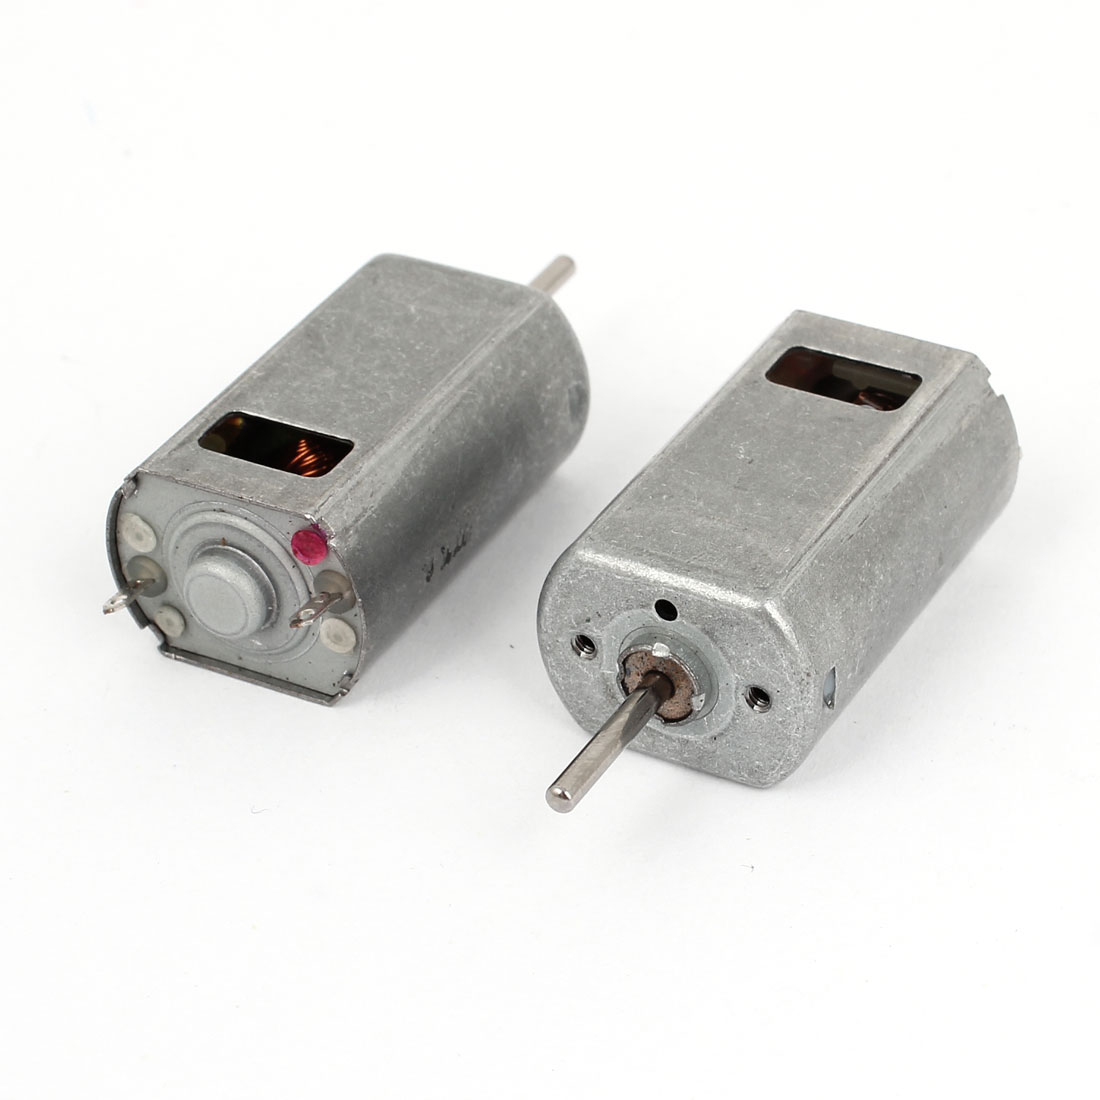 2pcs DC1.5-9V 22400r/min Output High Torque Magnet Vibration Motor for Massager